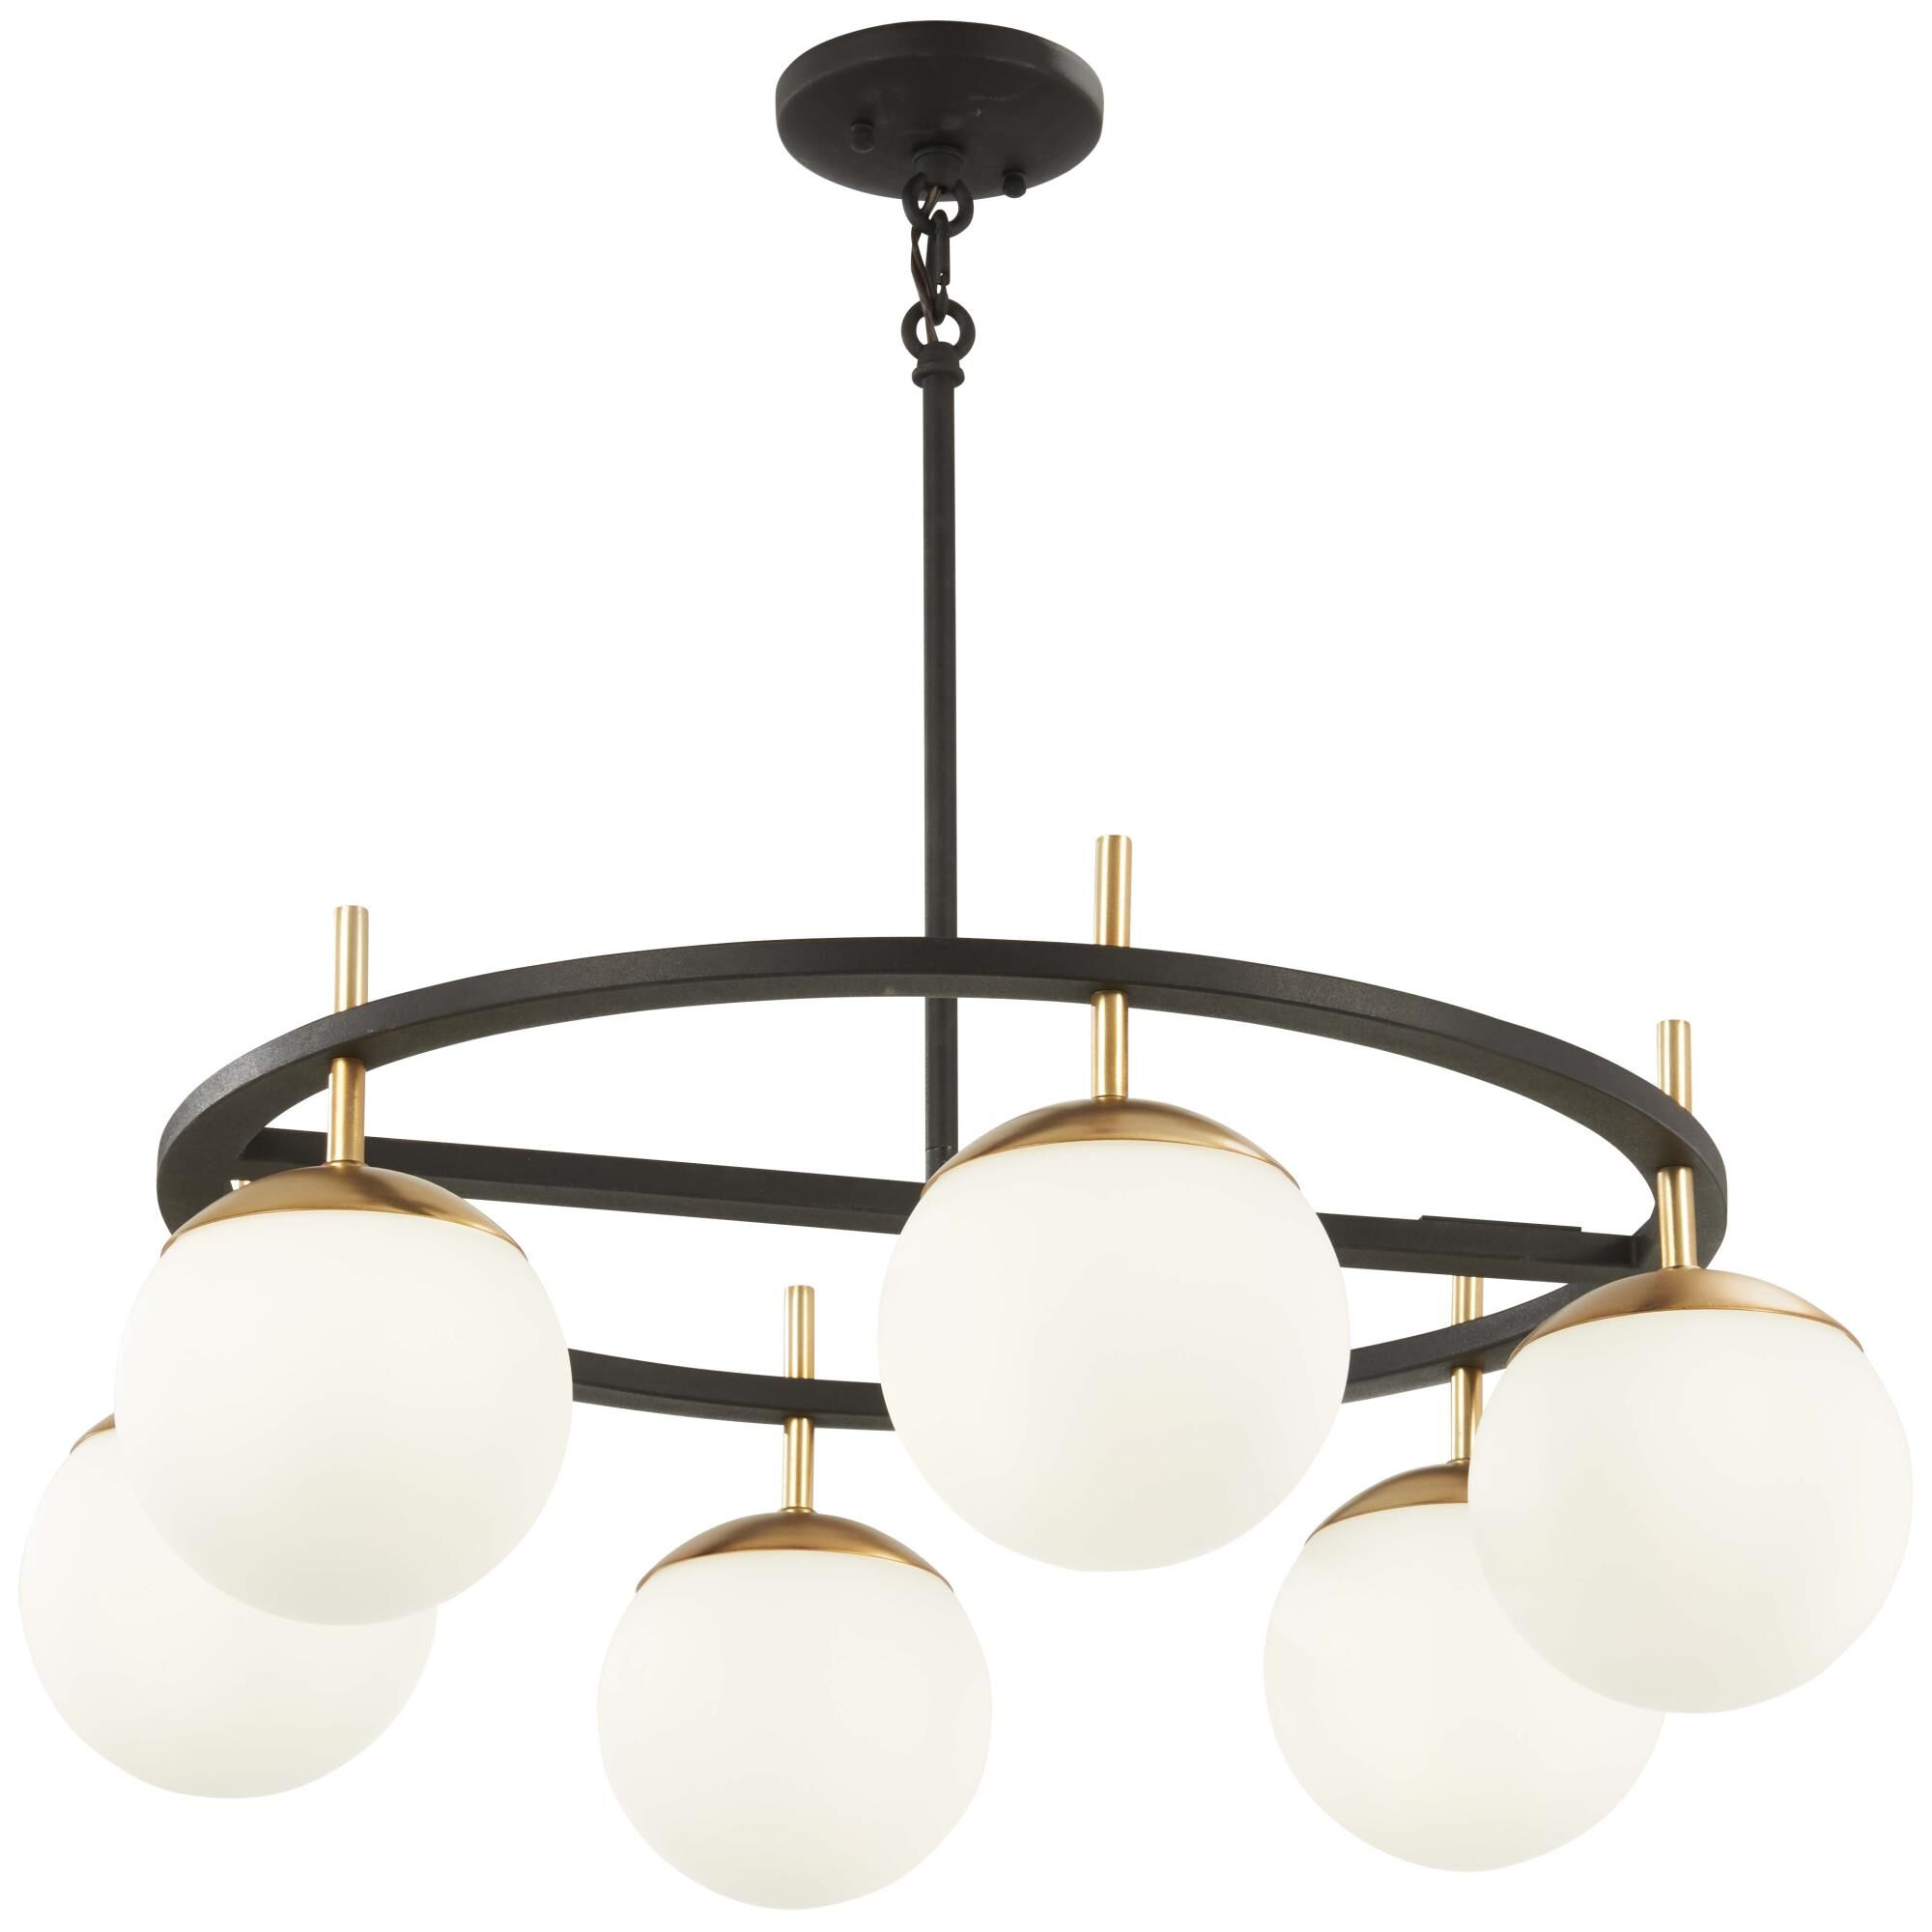 Kovacs Alluria 27 Inch 6 Light Multi Light Pendant Alluria - P1356-618 - Transitional